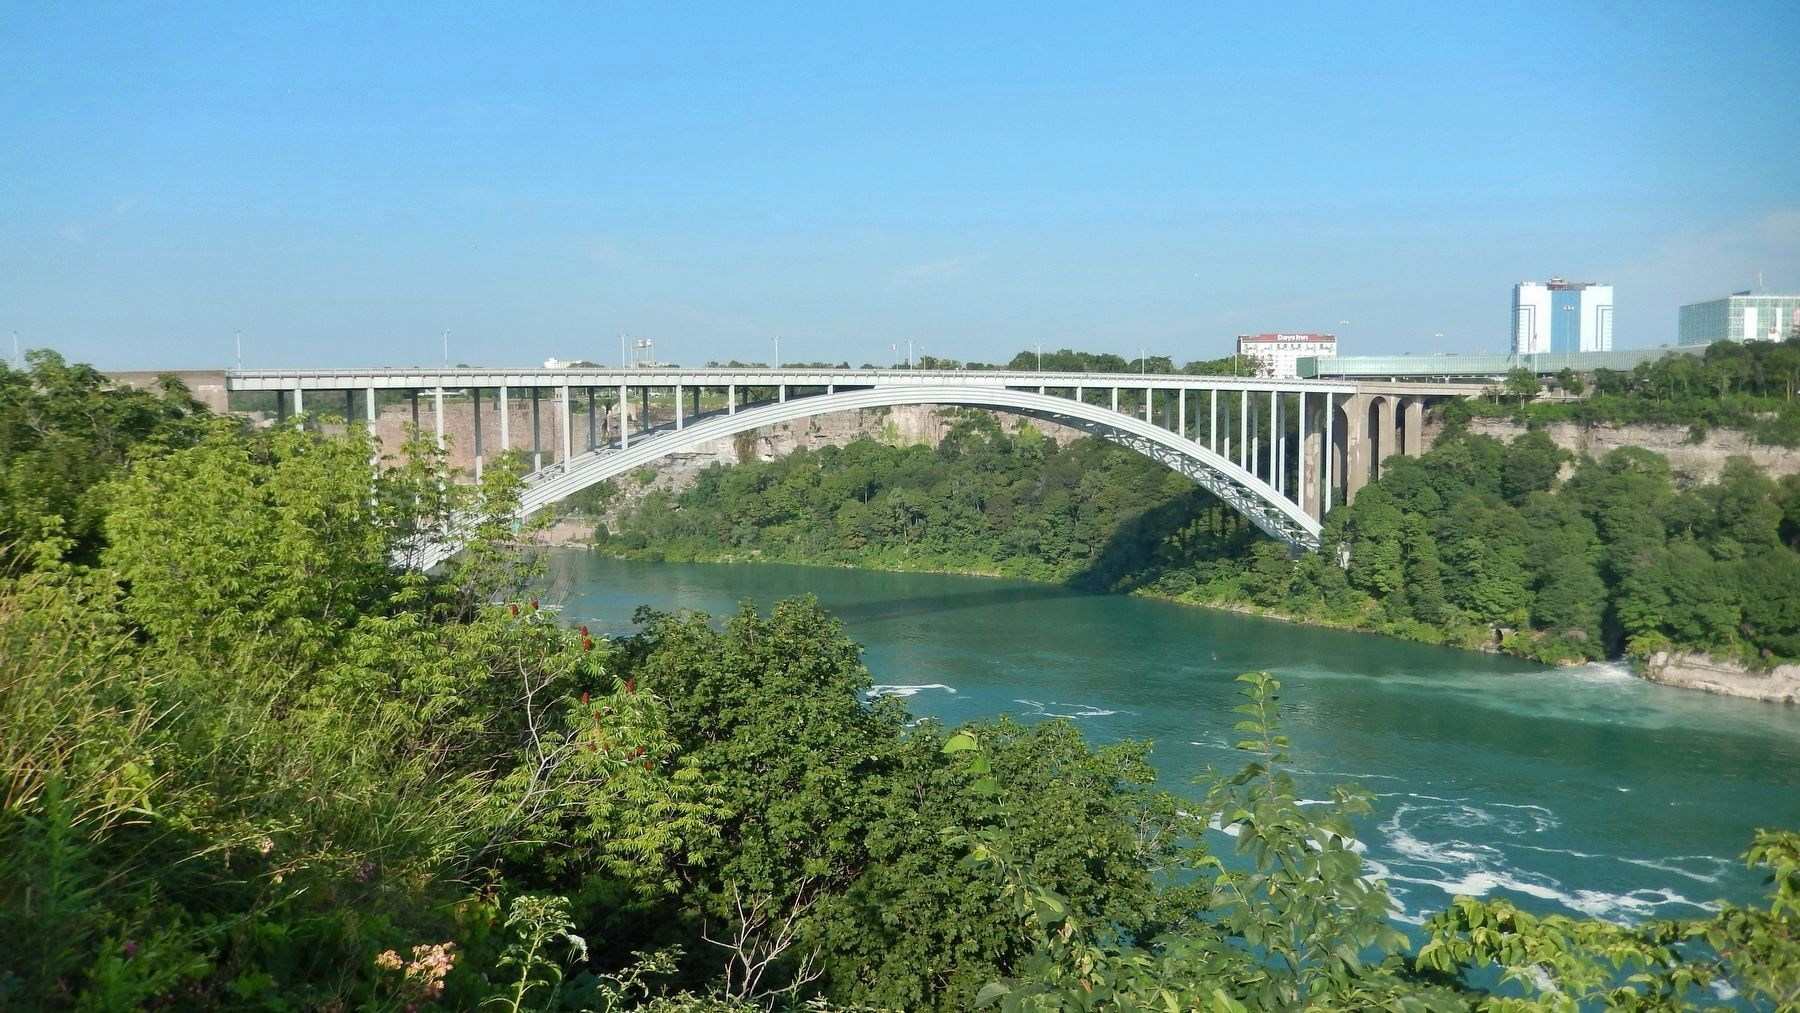 International Rainbow Bridge & Niagara River (<i>south side</i>) image. Click for full size.